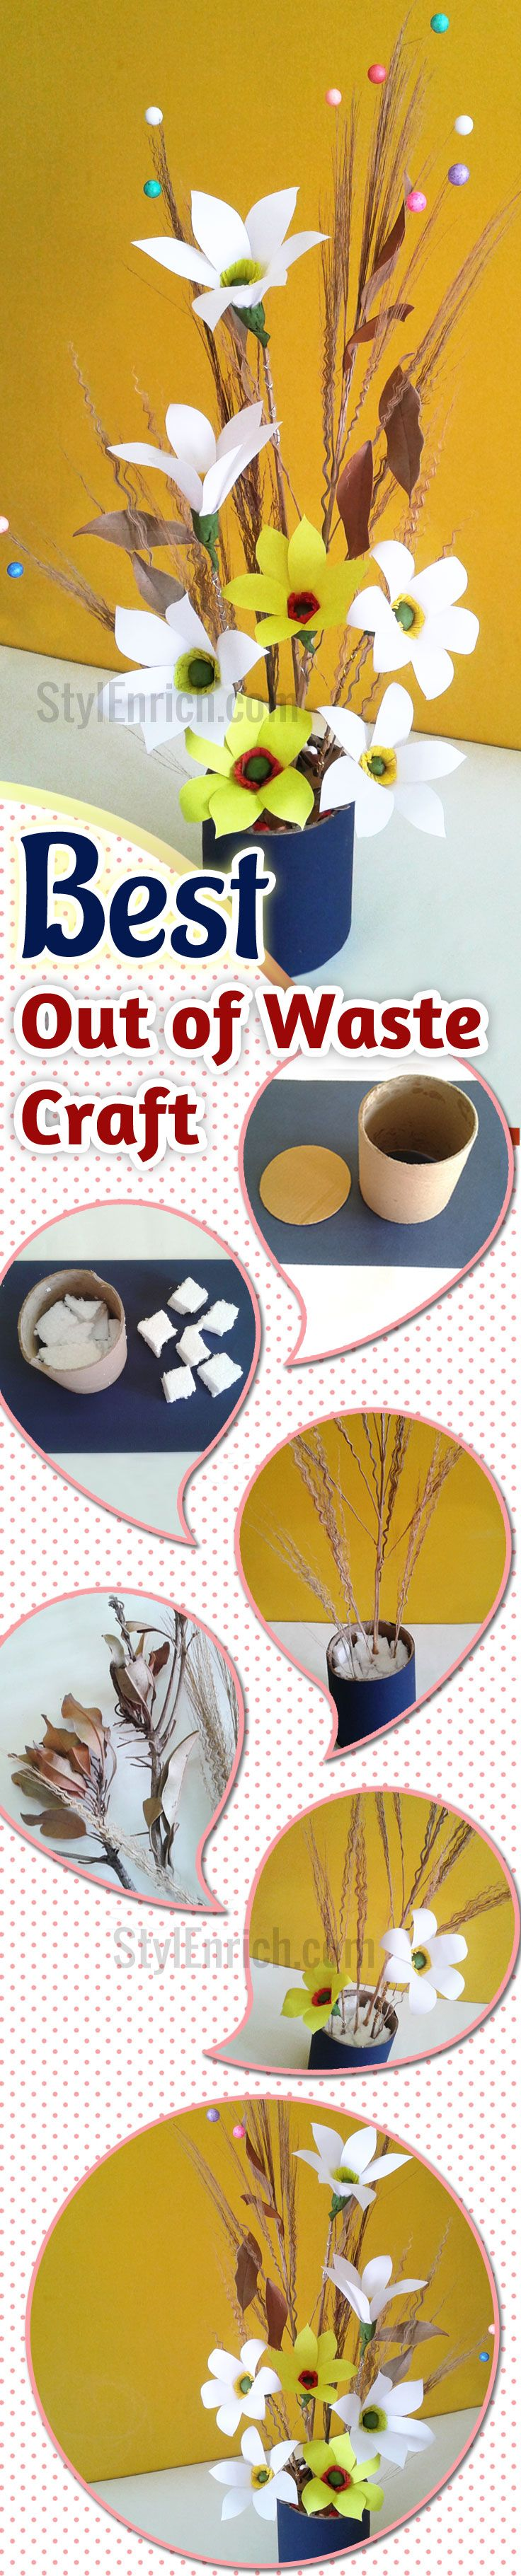 49 best images about best out of waste on pinterest for Craft out of waste